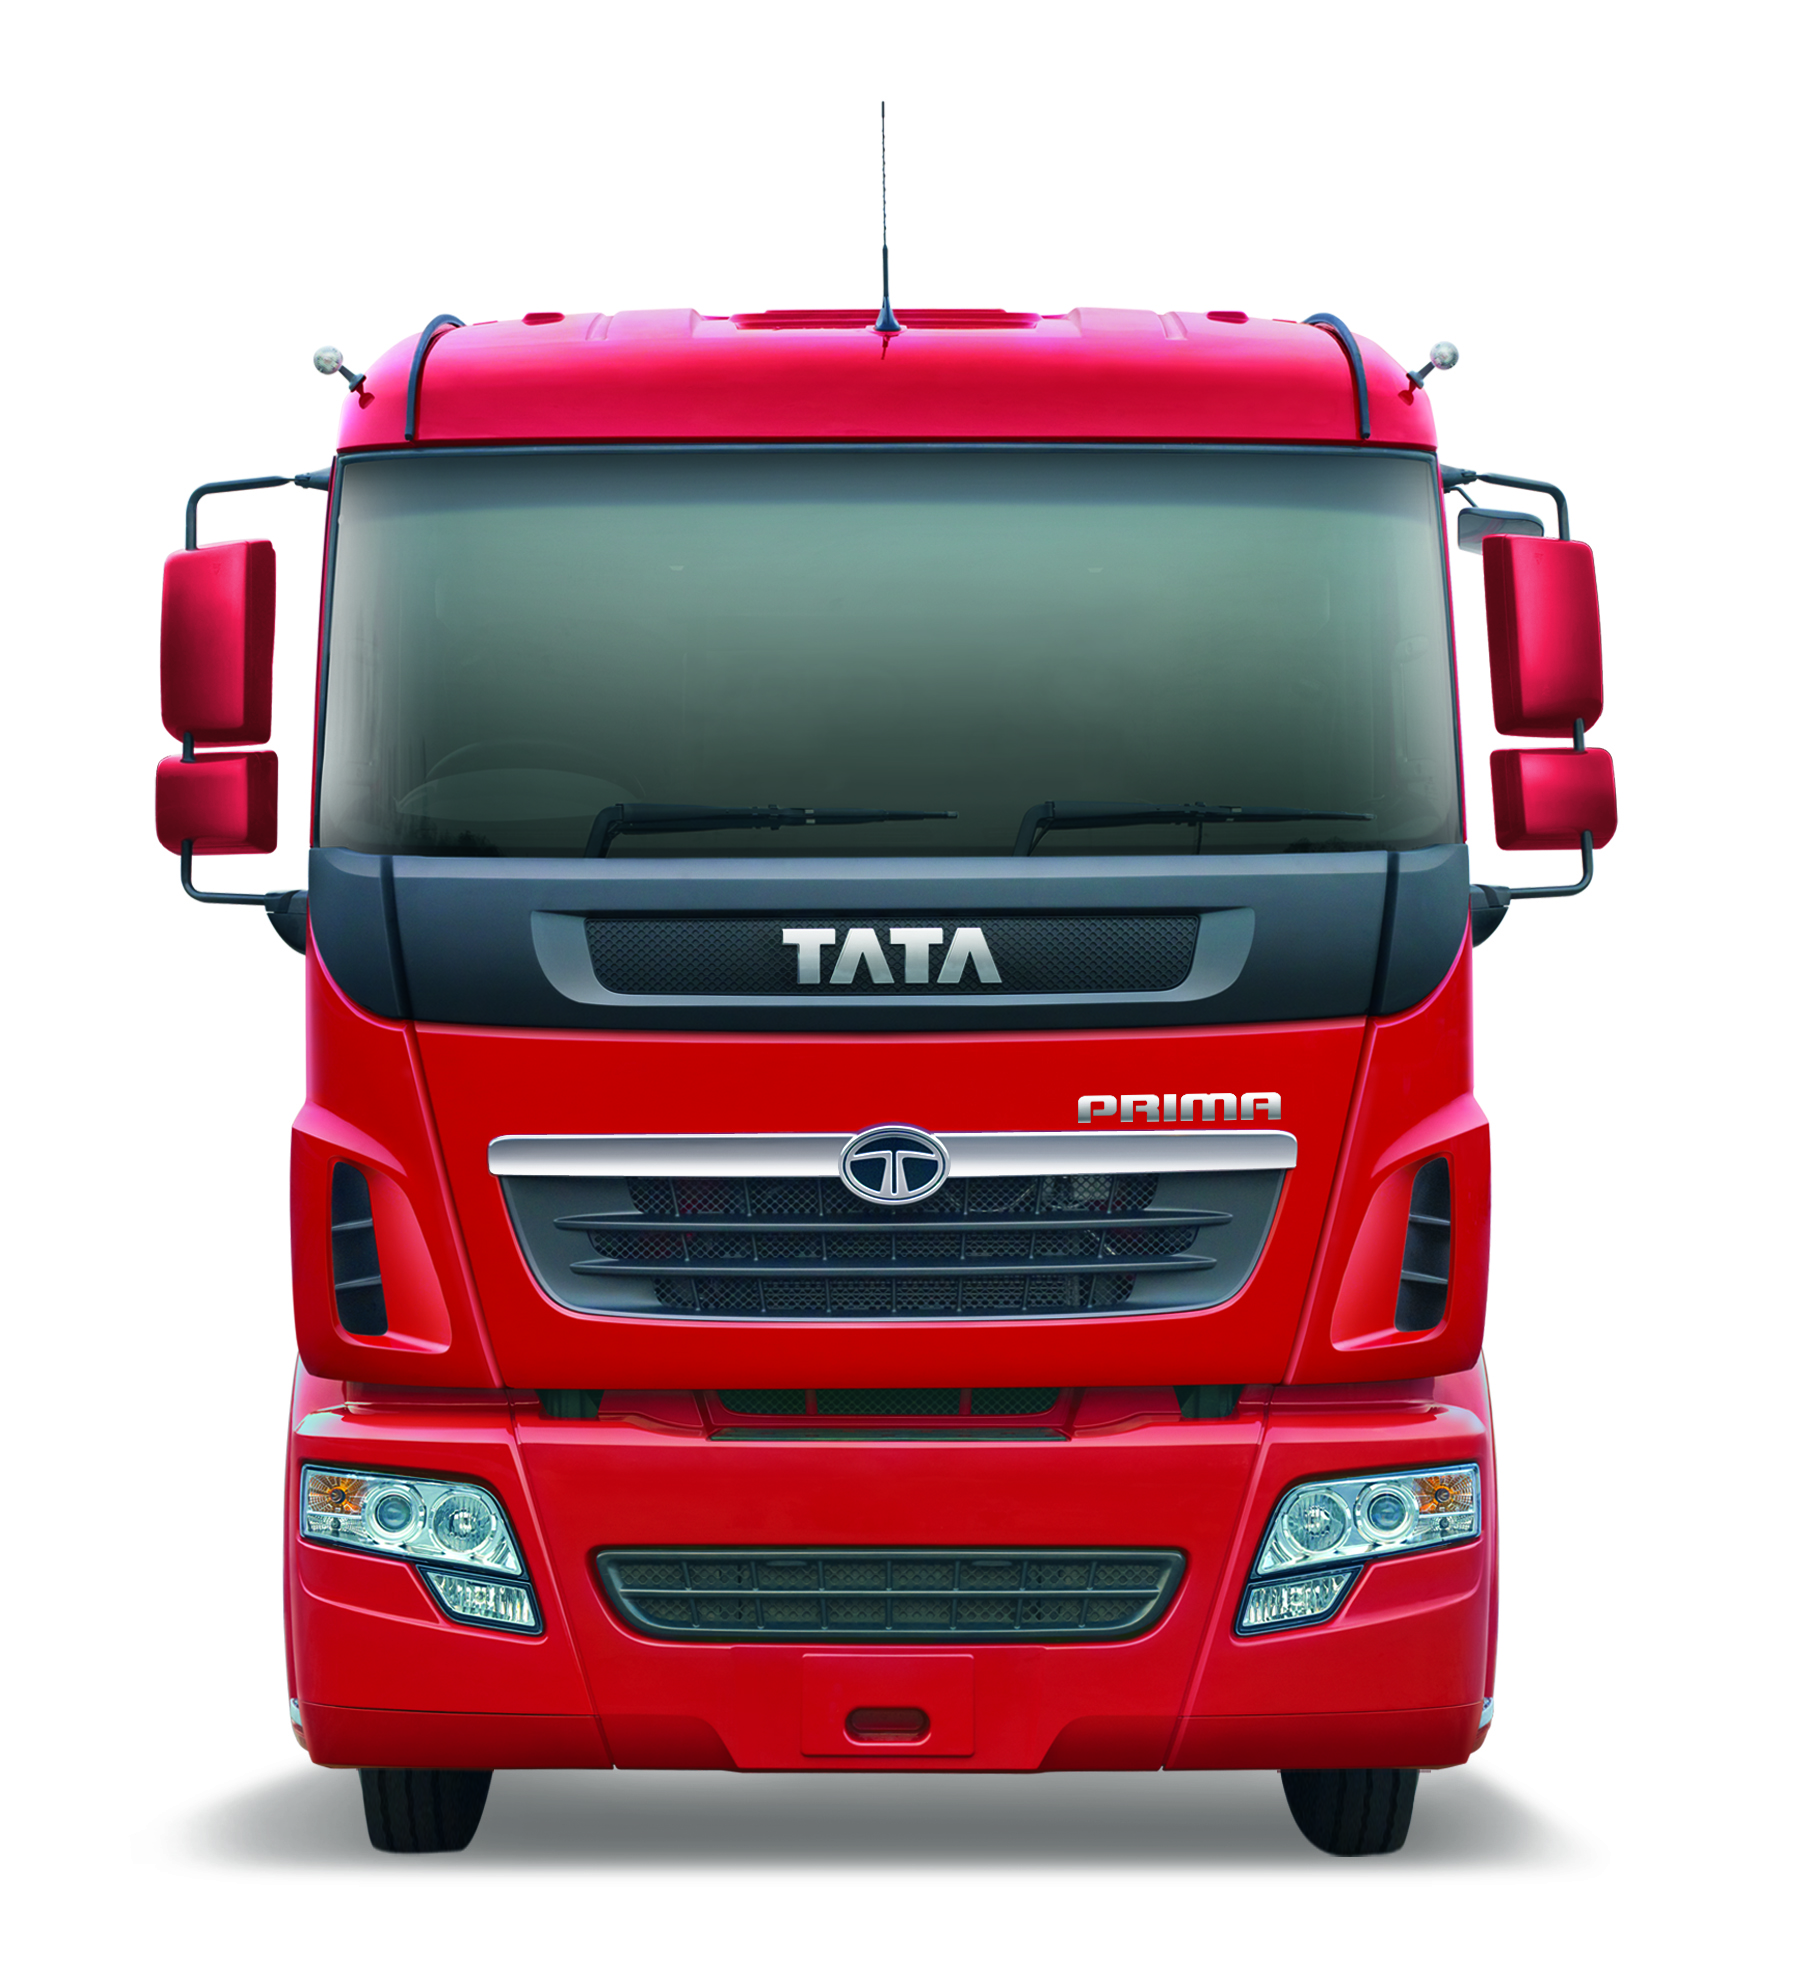 The launch of these new next-generation commercial vehicles marks Tata Motors continued efforts towards changing the trucking landscape and rough roads in ...